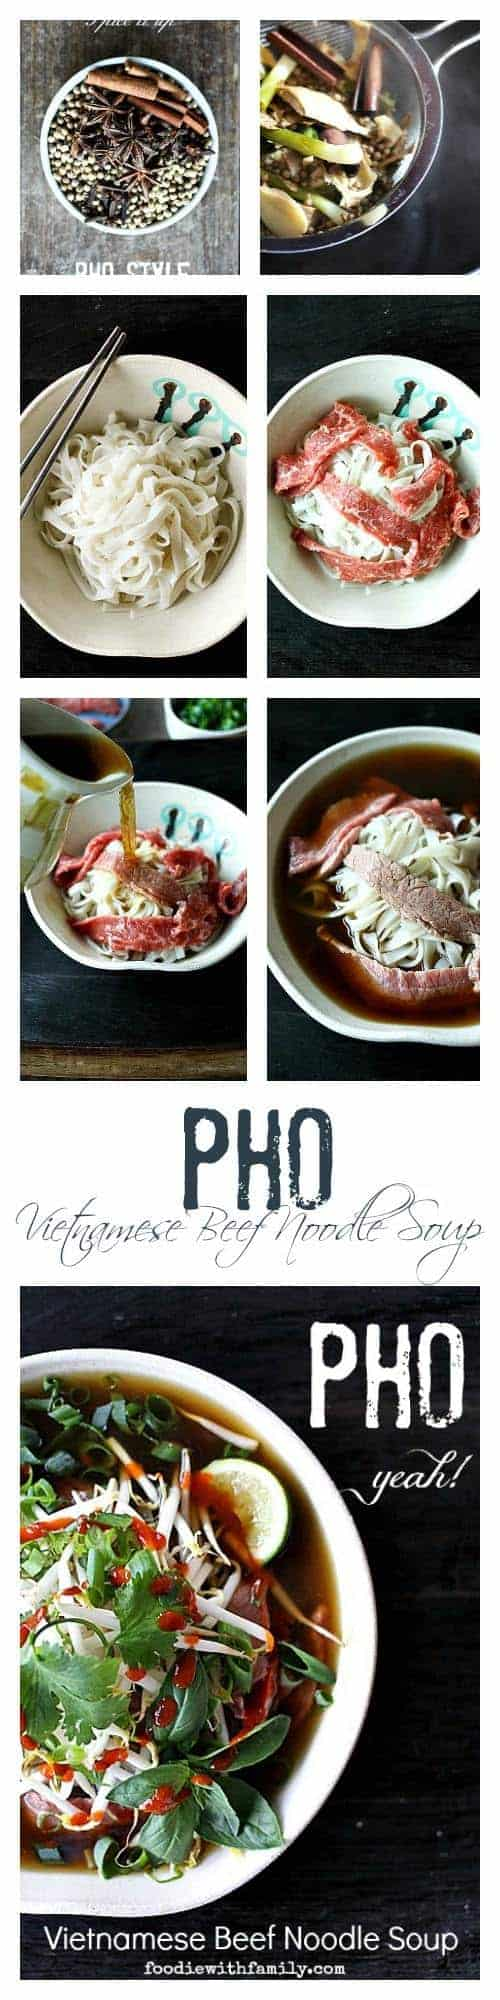 homemade Pho or Vietnamese Beef Noodle Soup